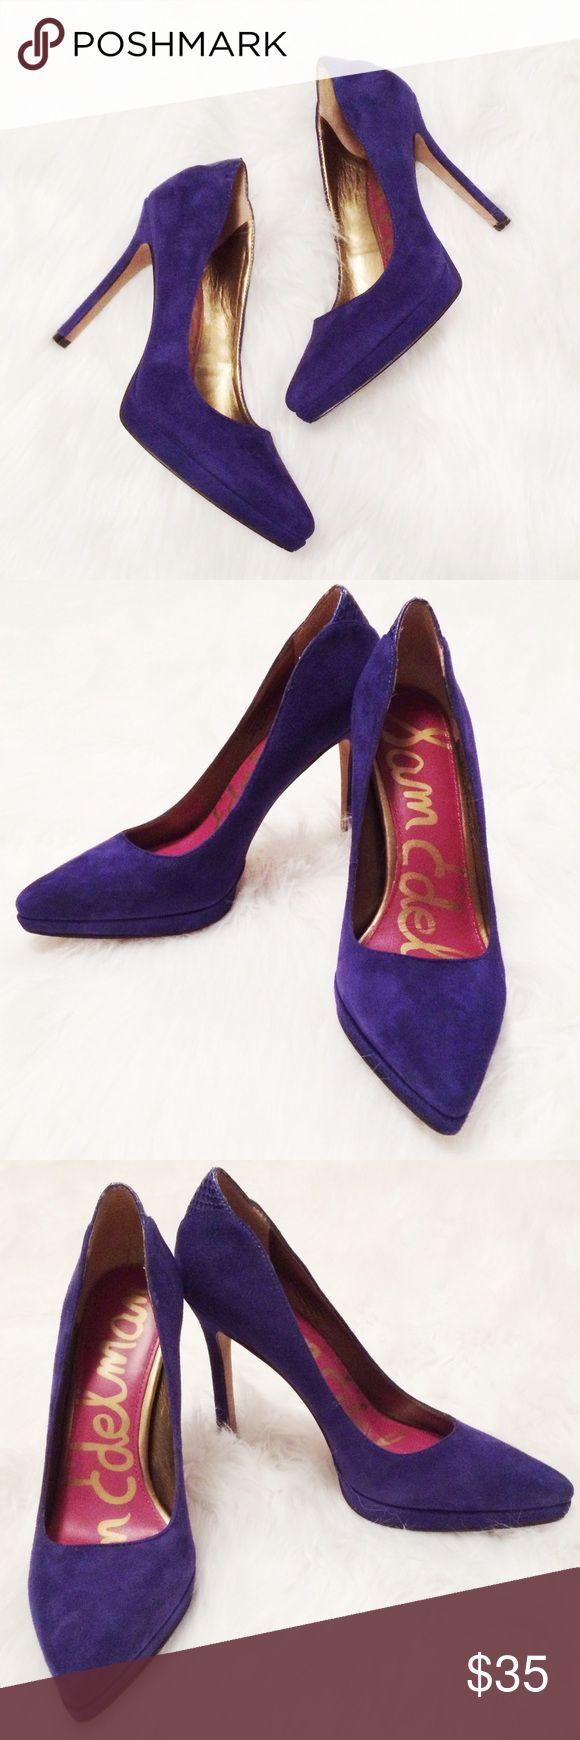 "Sam Edelman Celia Royal Blue Suede Stiletto Pumps Gorgeous royal blue suede heels in good pre-owned condition. Sexy 4"" heel. One small spot where stitching is a bit loose - shown in photo. Thank you for looking! Sam Edelman Shoes Heels"